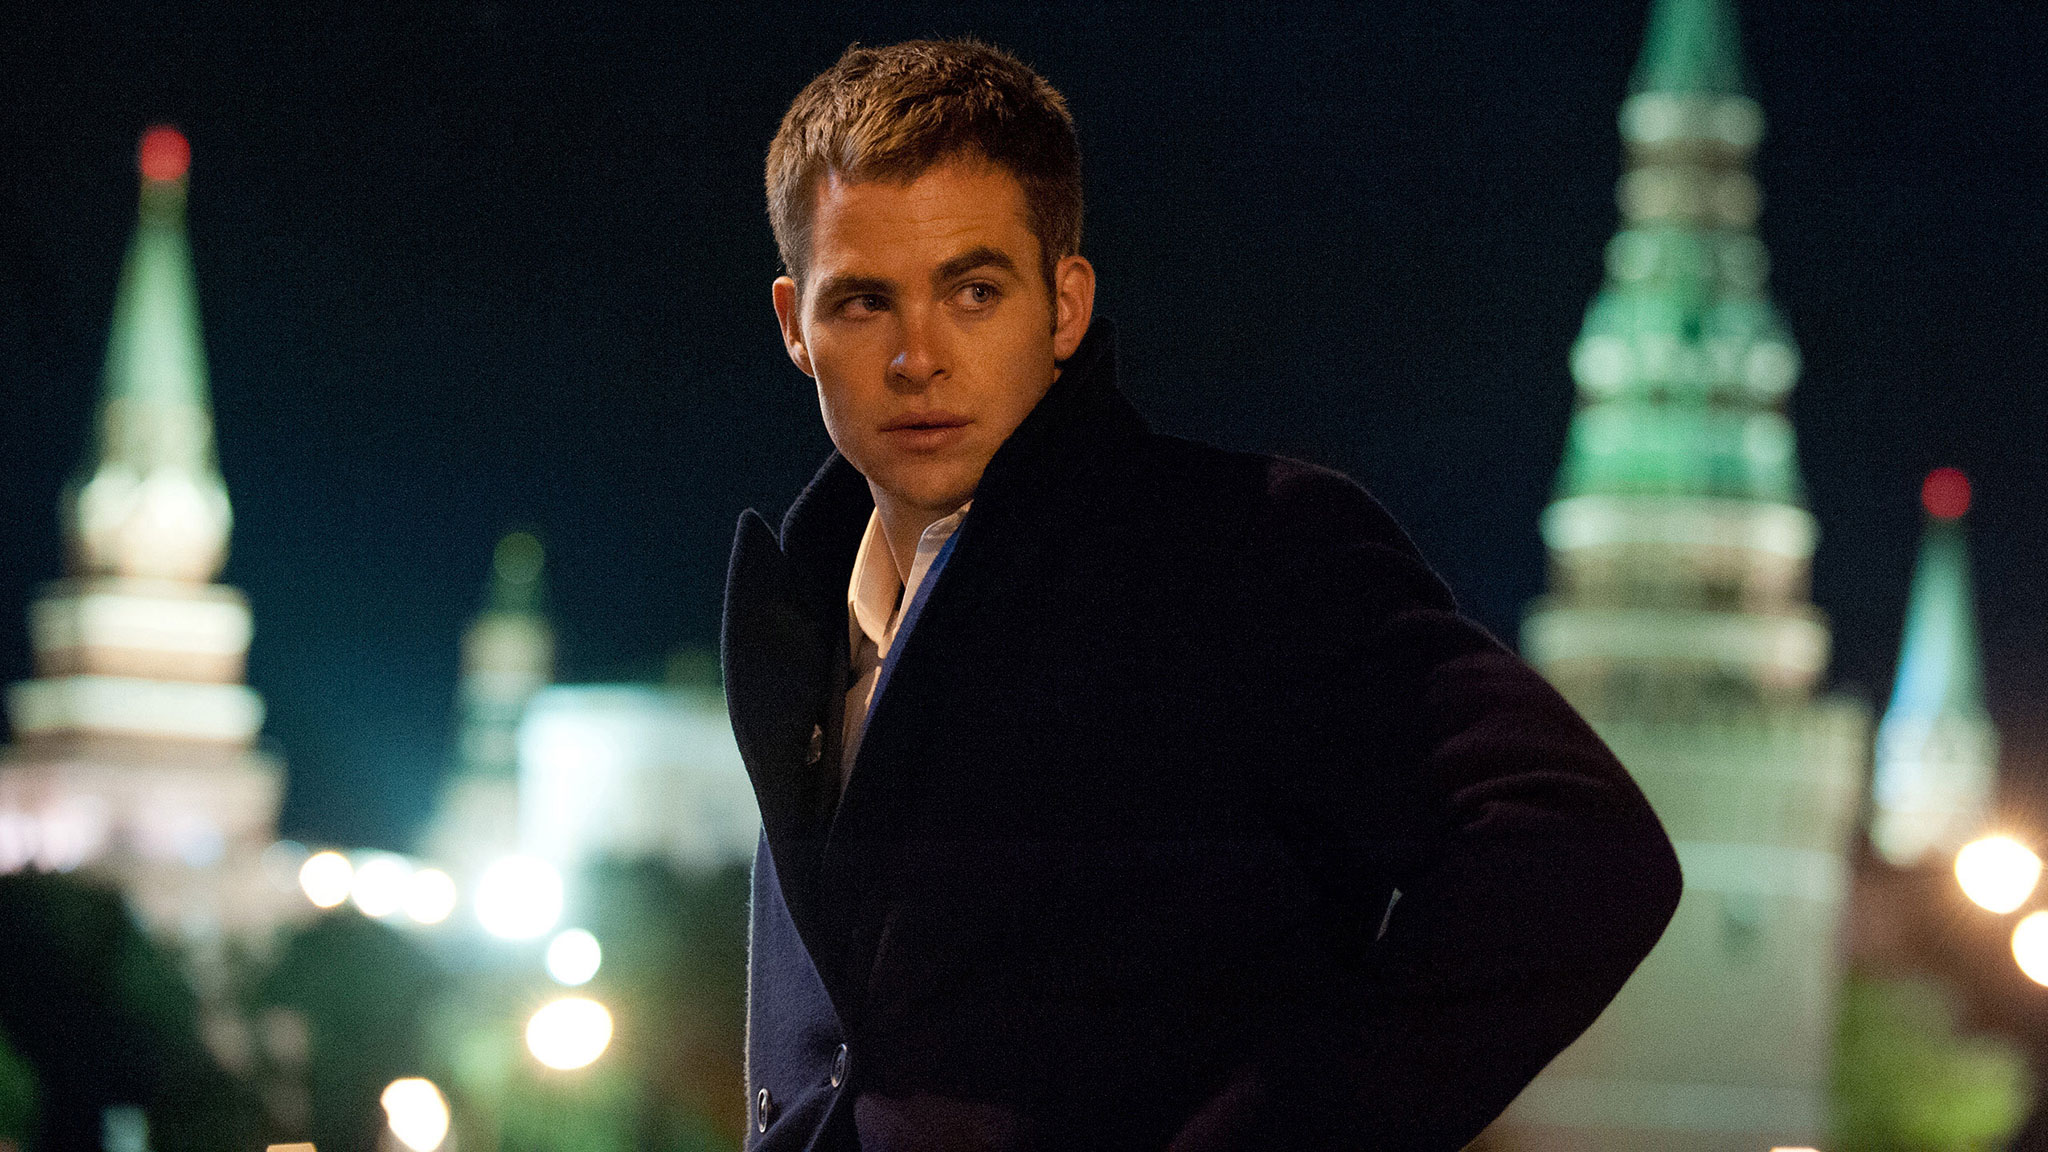 Jack Ryan: Shadow Recruit fails to fully surface Of All